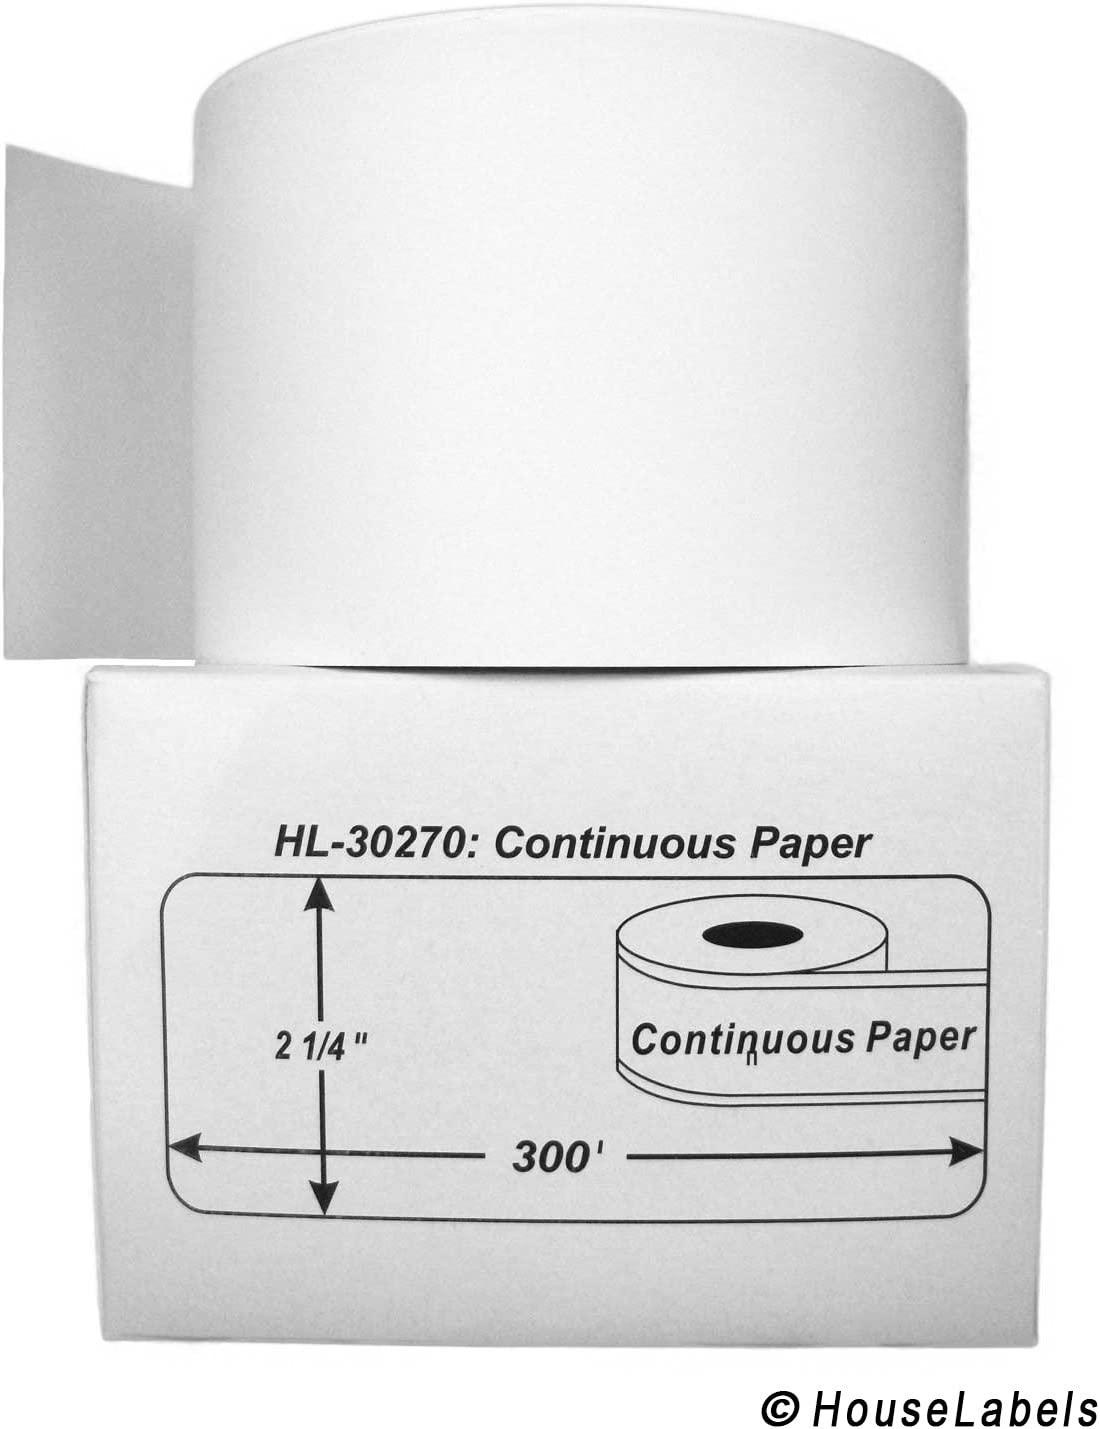 """SHIPS FAST 2 Rolls; Continuous Paper, DYMO-Compatible 30270 Continuous Receipt Paper (2-7/16"""" x 300') - BPA Free!"""